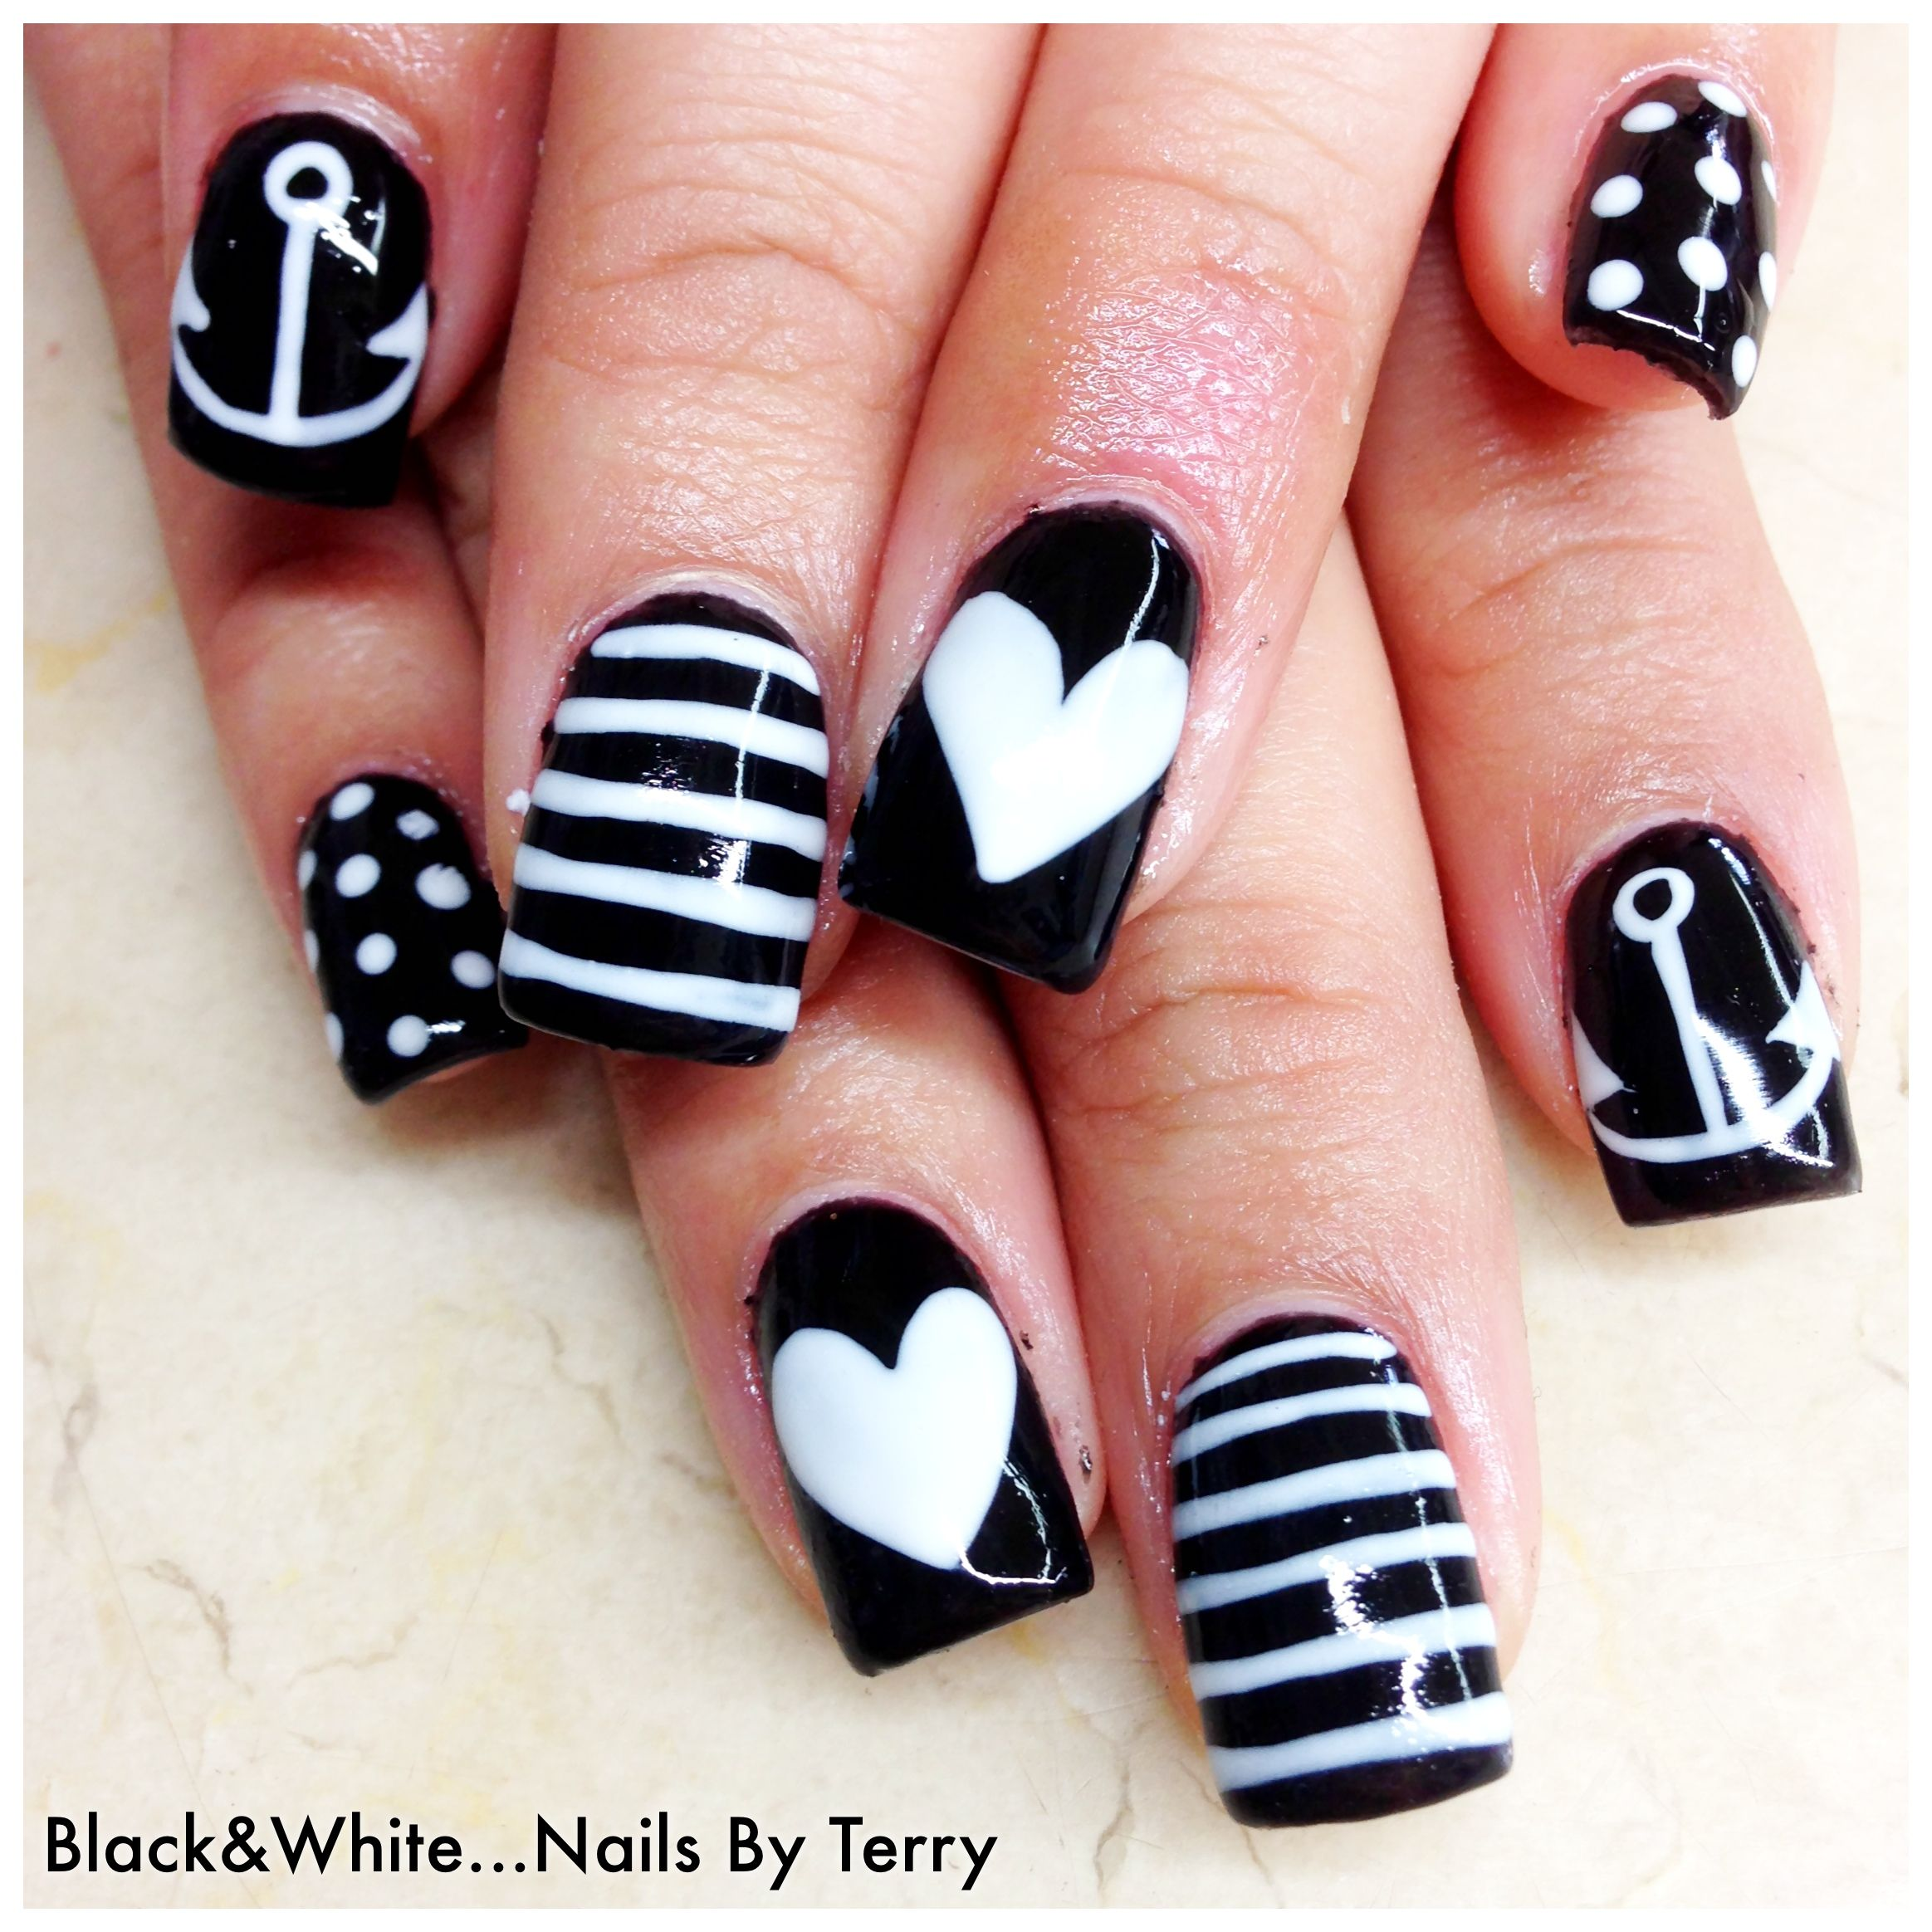 Nails inc gel nail colors and gel nail polish on pinterest - Black And White Gel Nails By Terry Except I Would Do A Different Color Because I Don T Wear Much Black